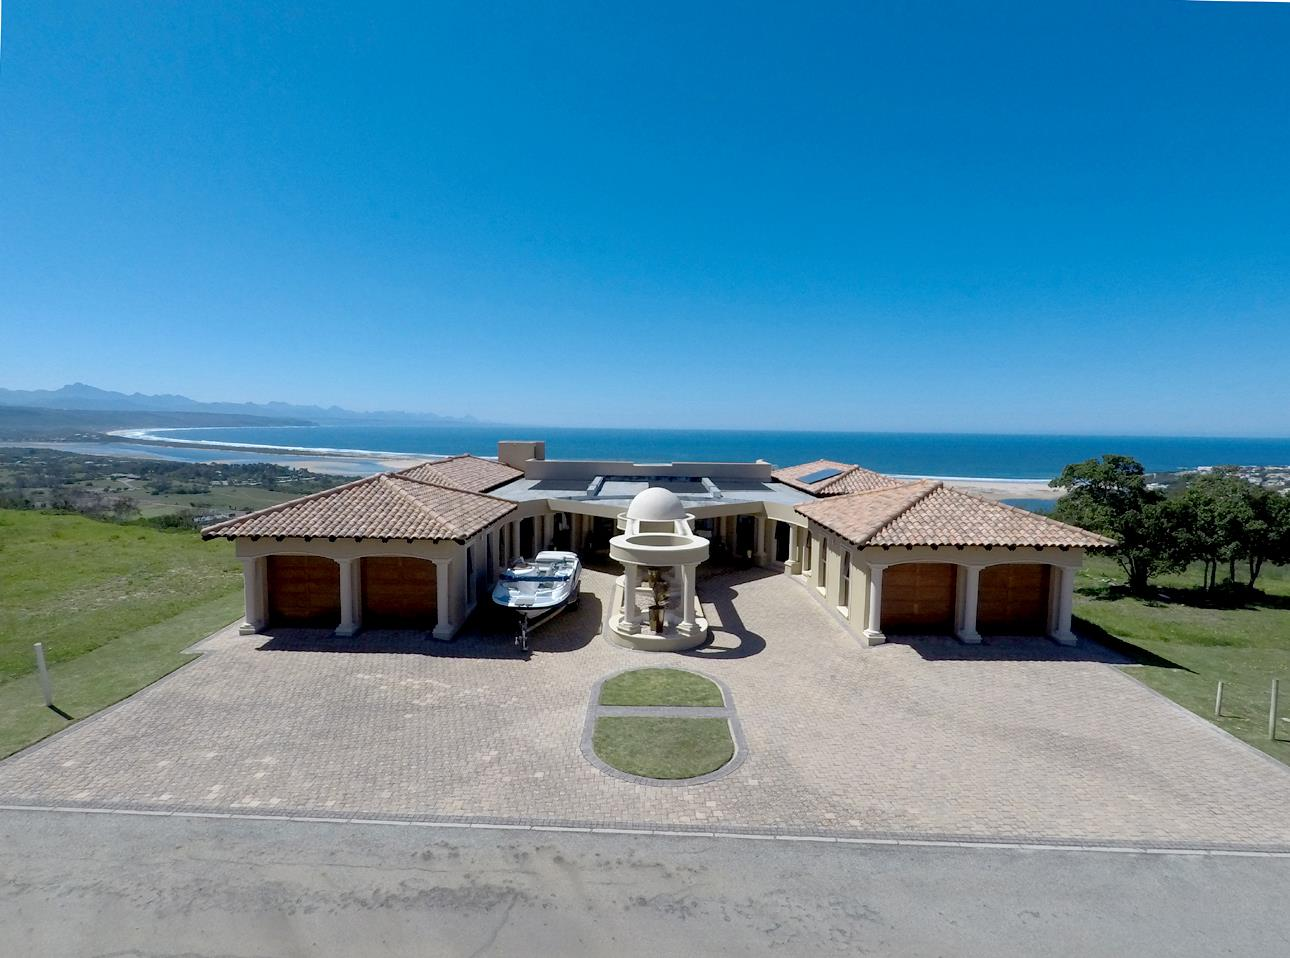 10087 The Hill, The Hill, Plettenberg Bay - ZAF (photo 1)